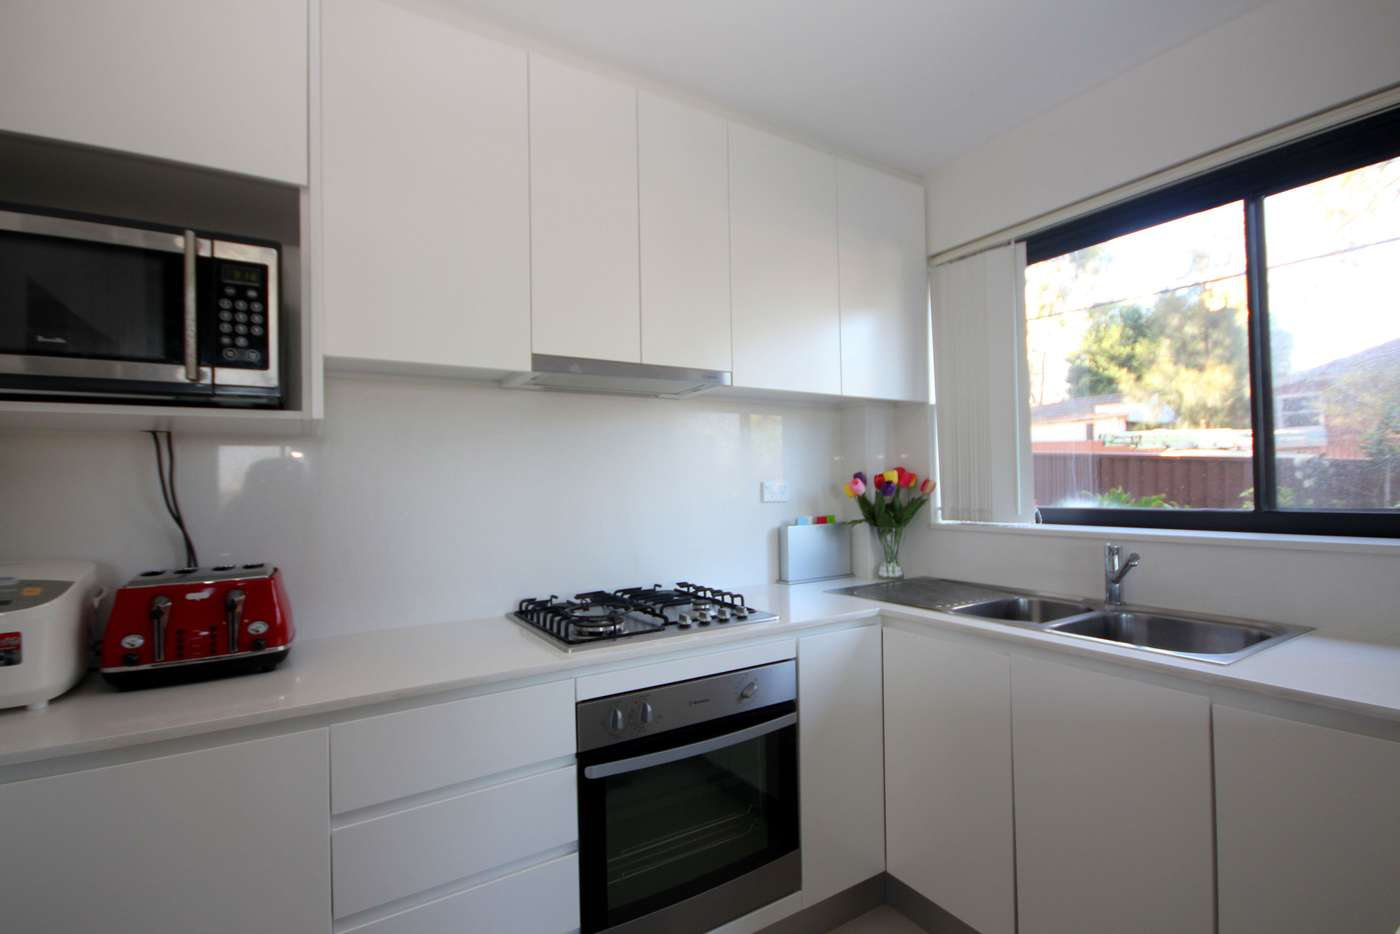 Main view of Homely apartment listing, 14/203-207 Auburn Road, Yagoona NSW 2199